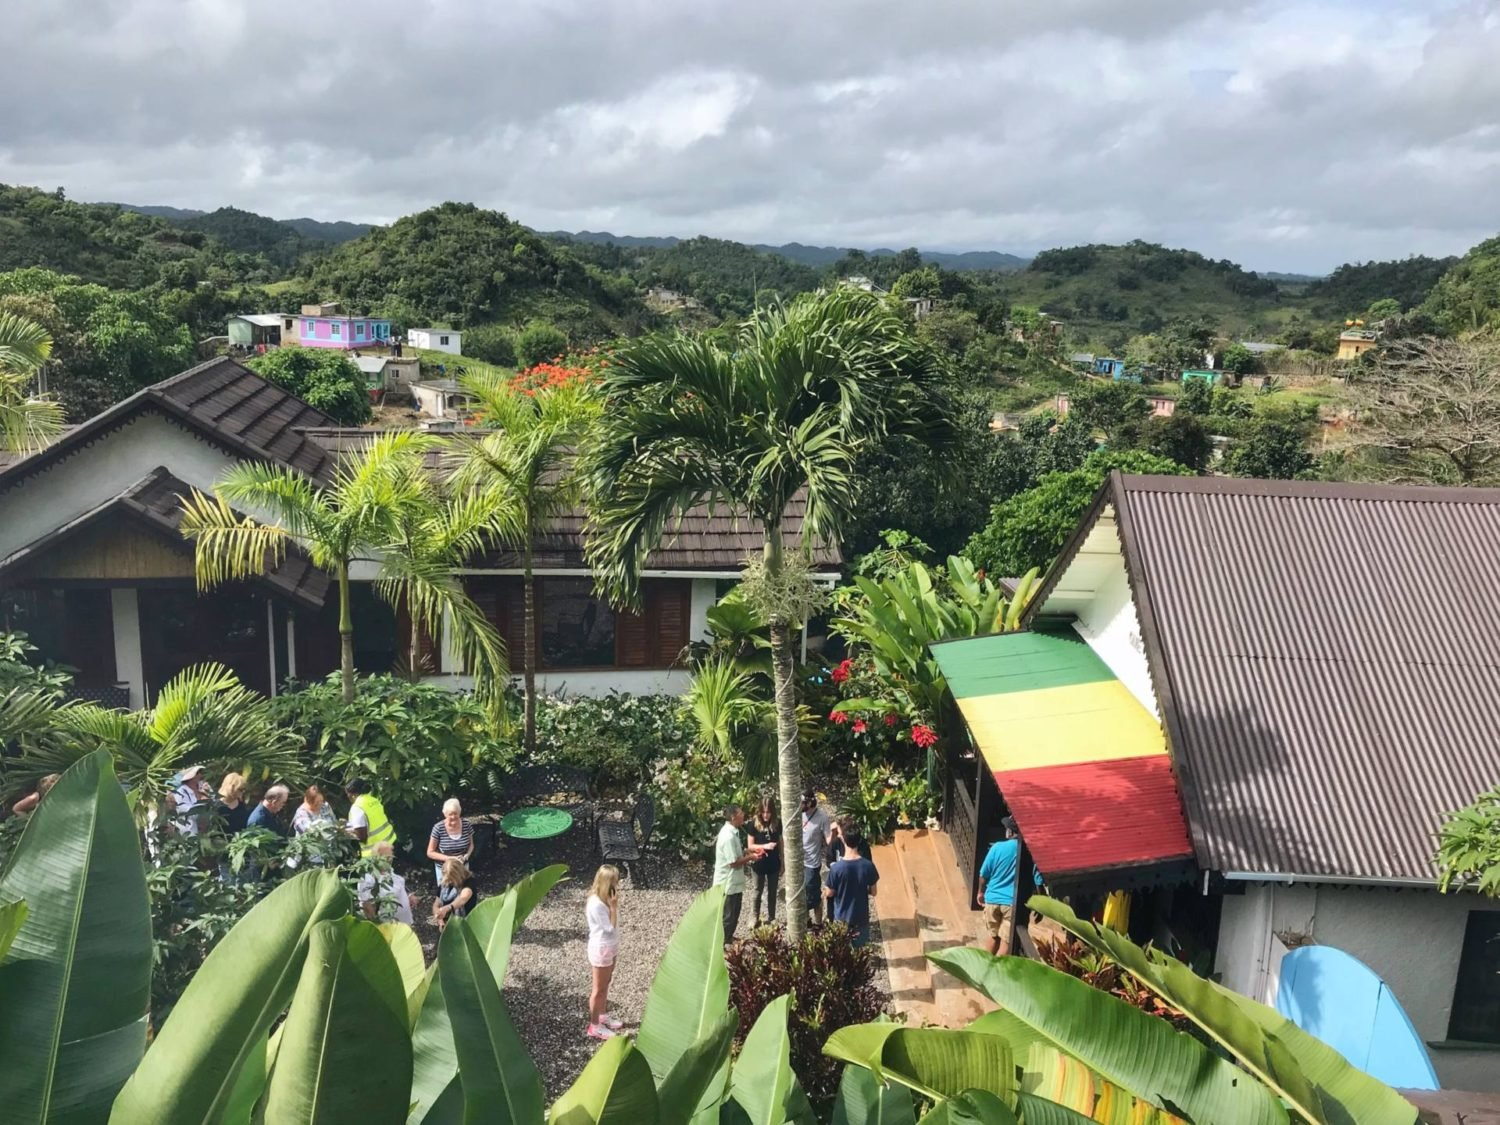 Best experiences in Jamaica: visit Bob Marley's house